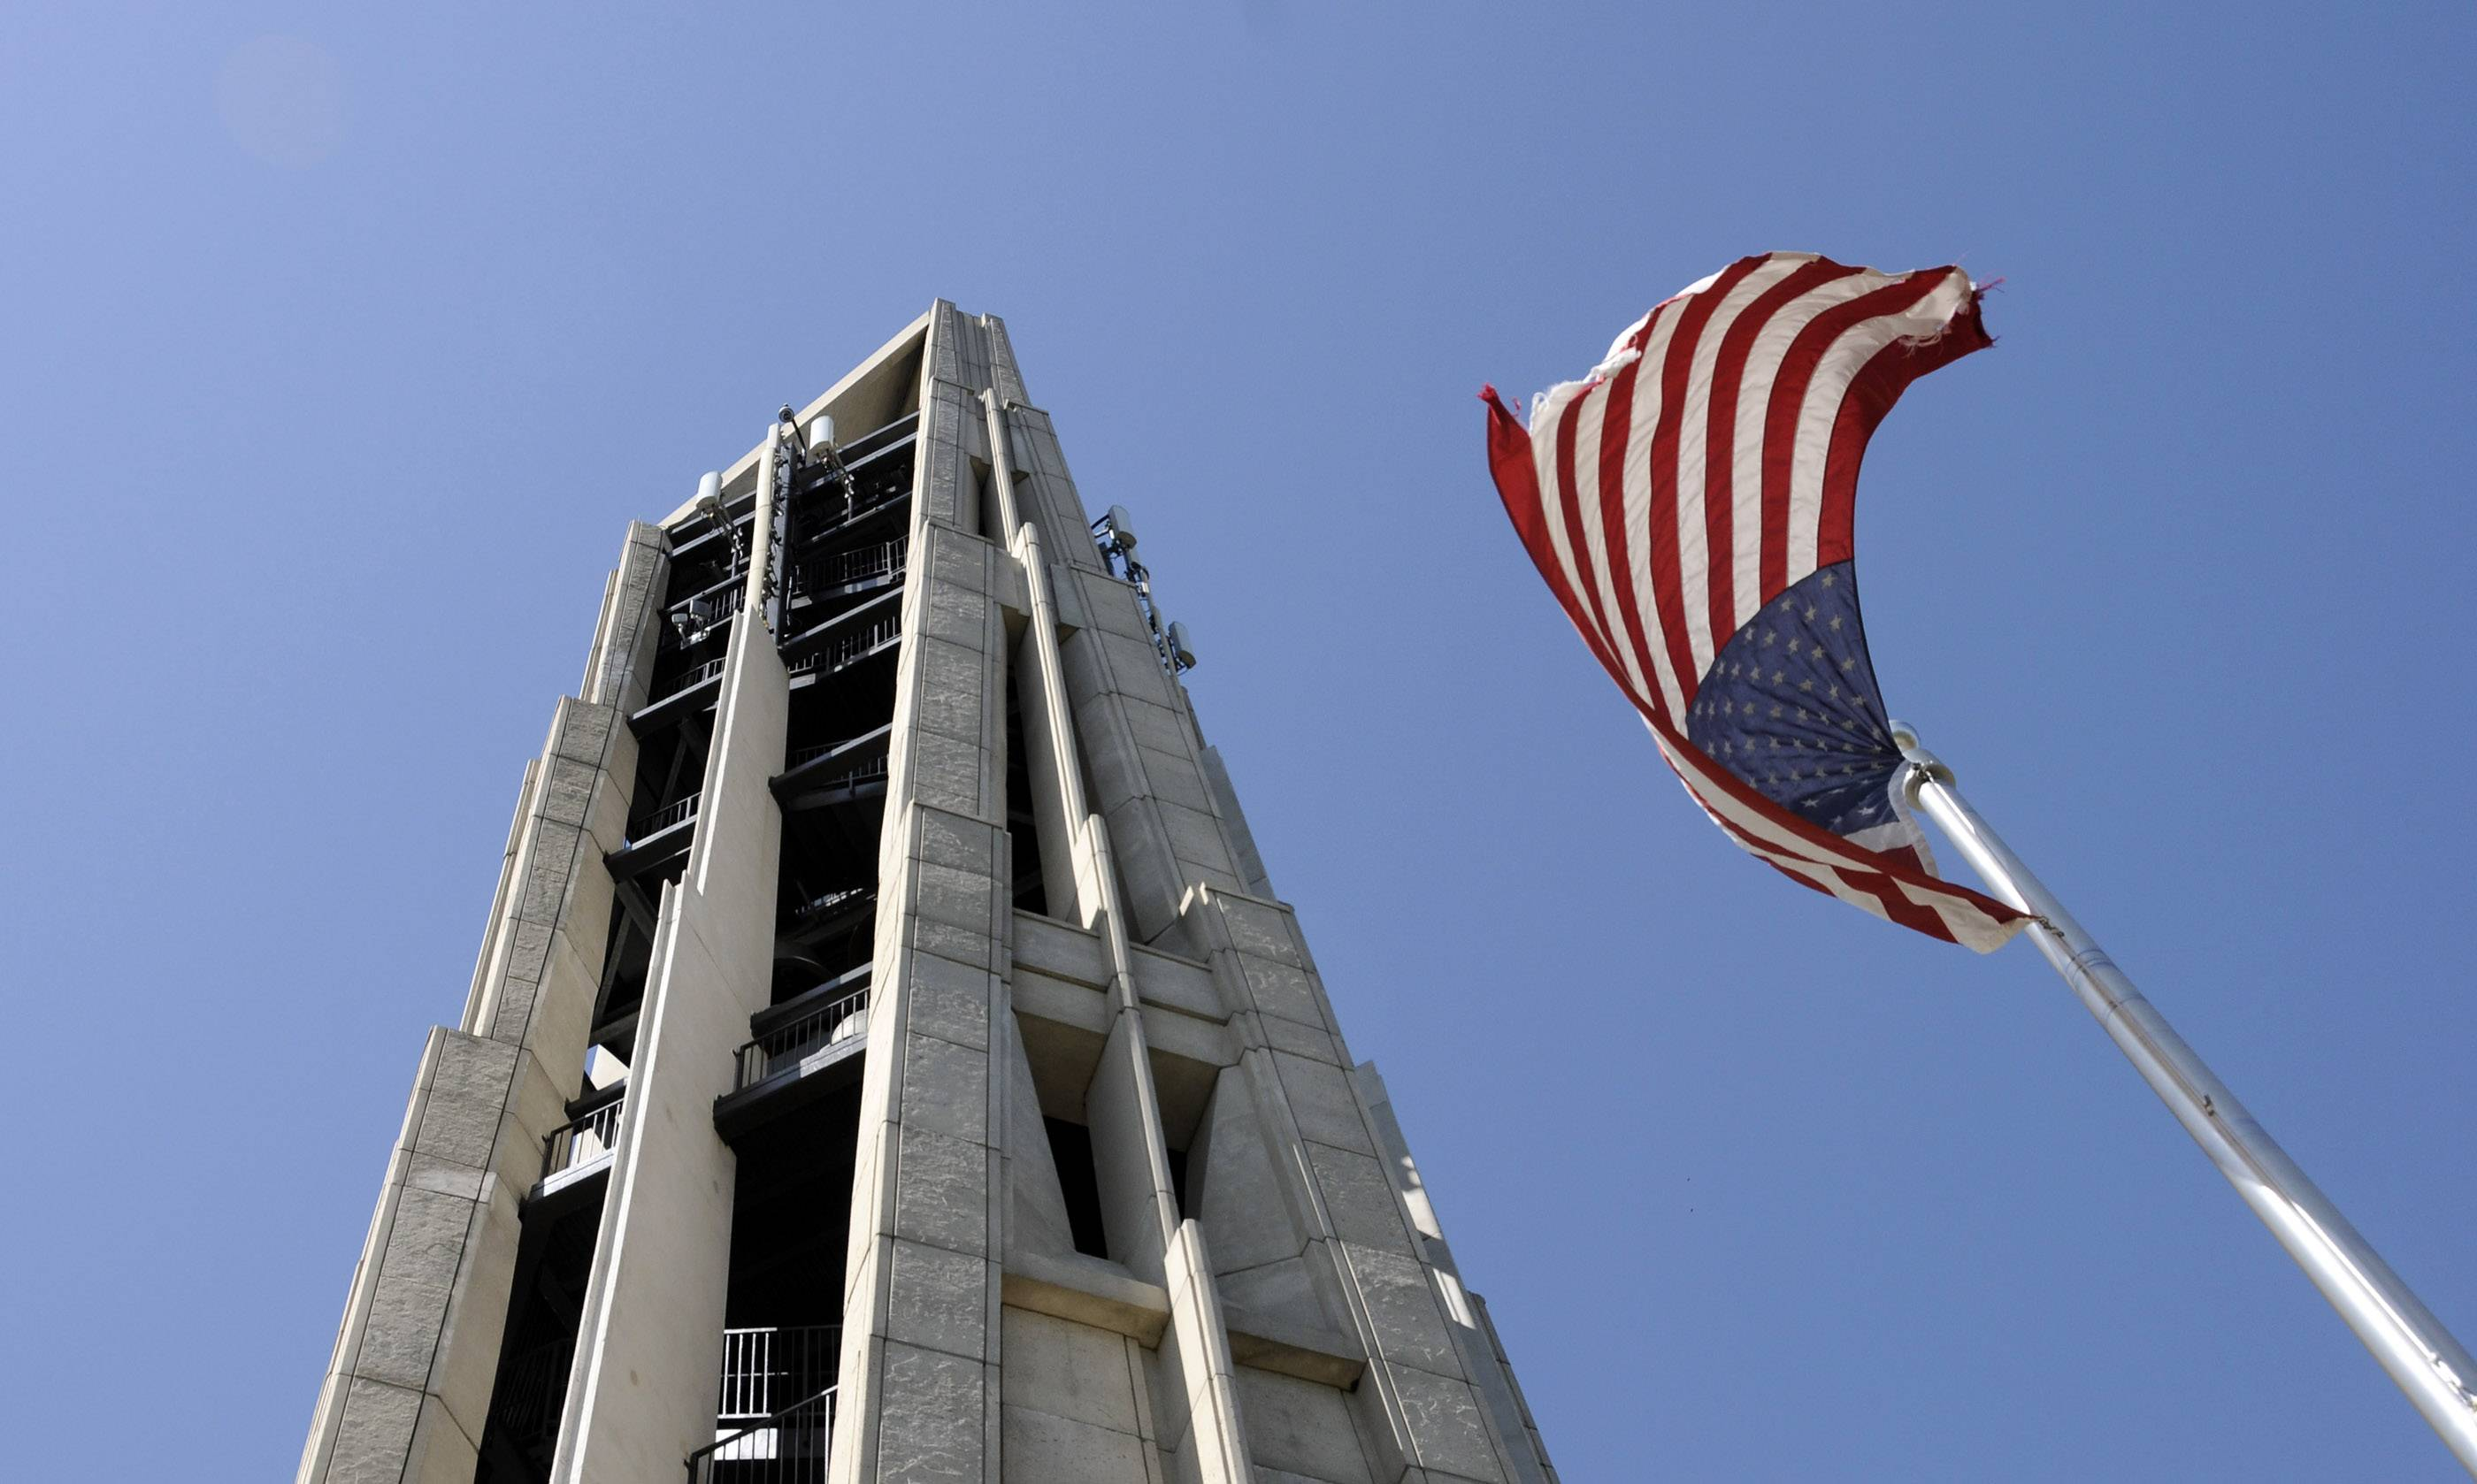 The Millennium Carillon in Moser Tower and the Visitor Center will open for the 2014 season Saturday, May 3, along Naperville's downtown Riverwalk.